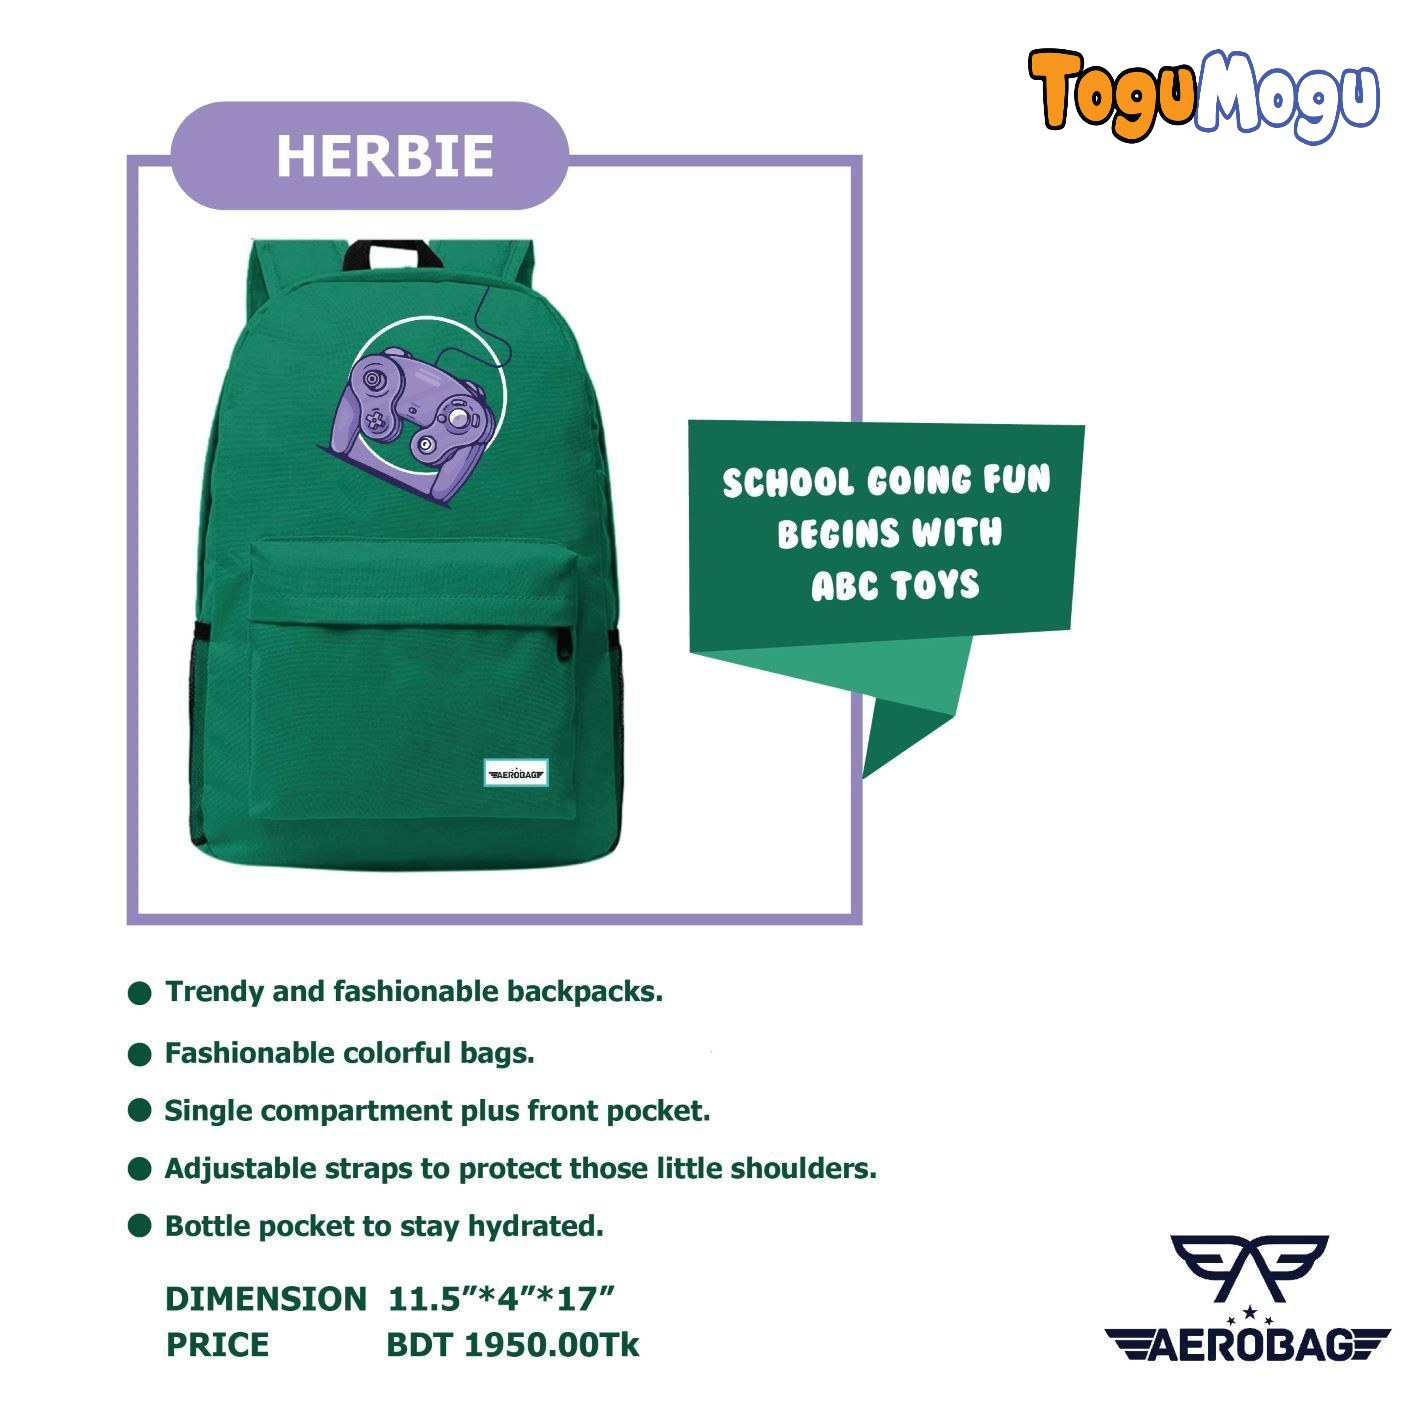 AEROBAG AER051 Herbie Gaming